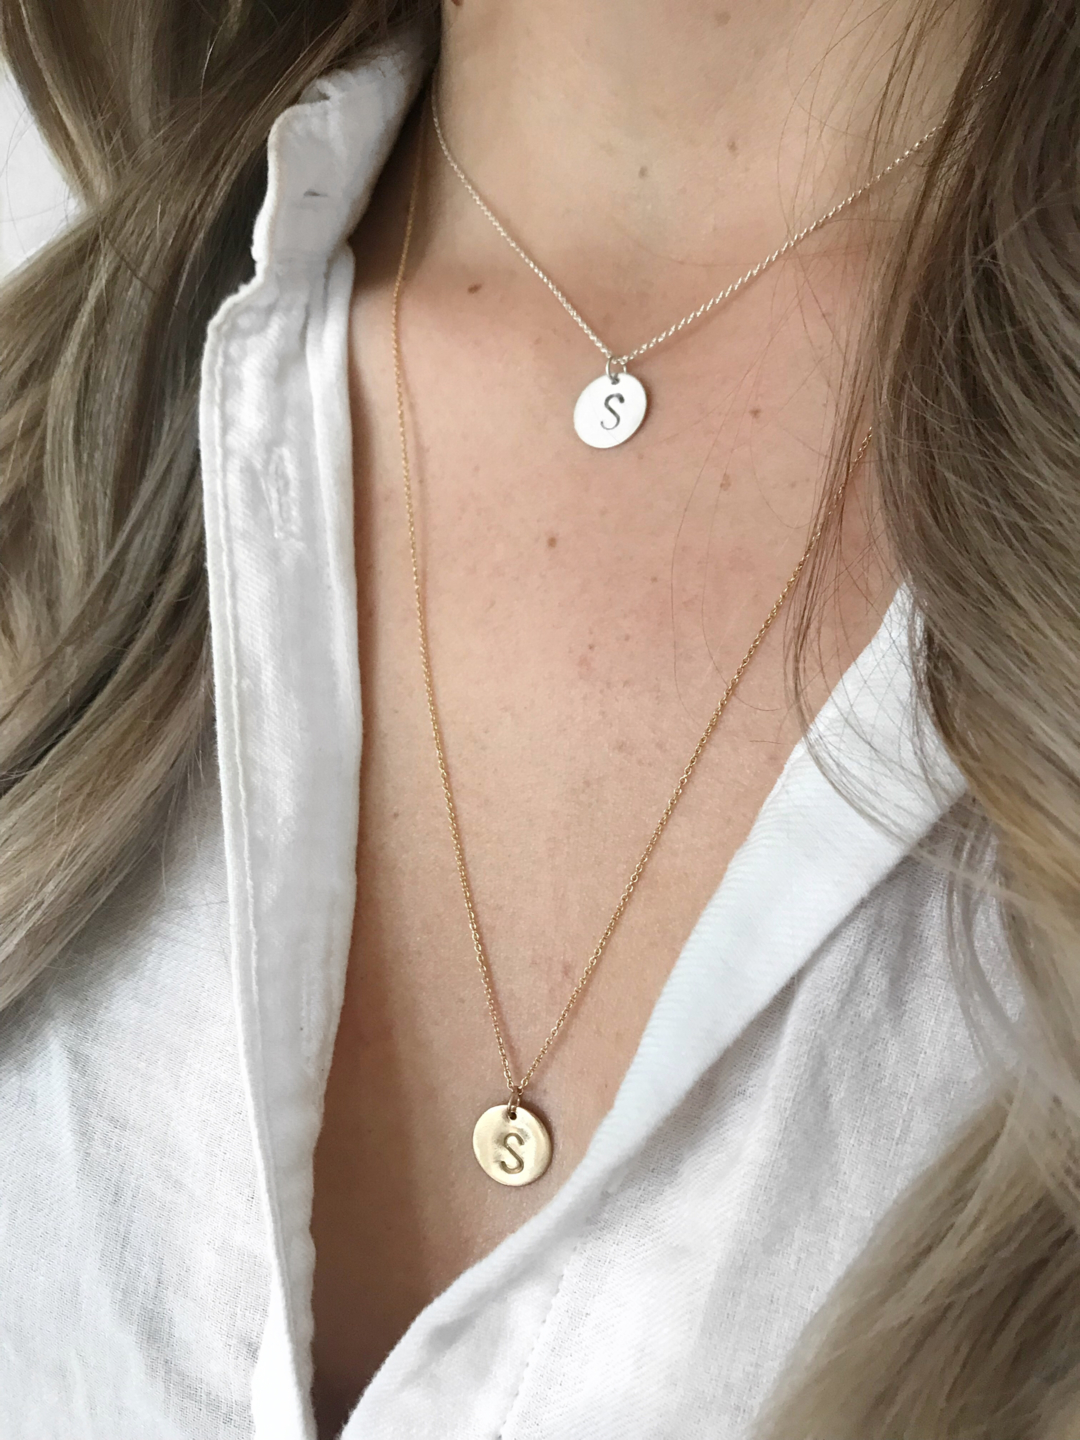 Our Initial Necklace! - Our Initial Necklace was designed by Lofty Living, and is hand made by The Pirate & The Gypsy.Available in sterling silver, 14k gold and 14k rose gold filled, with a choice of a 16